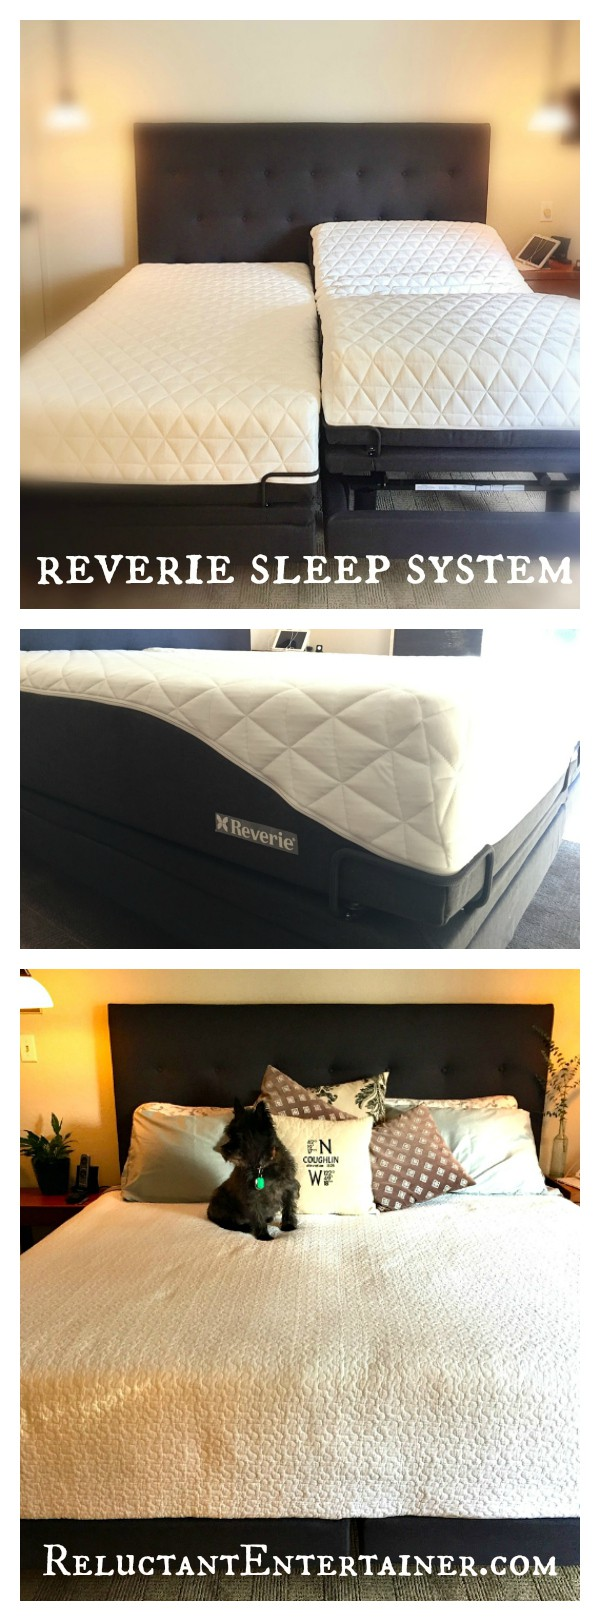 Reverie Sleep System for Your Best Night's Sleep